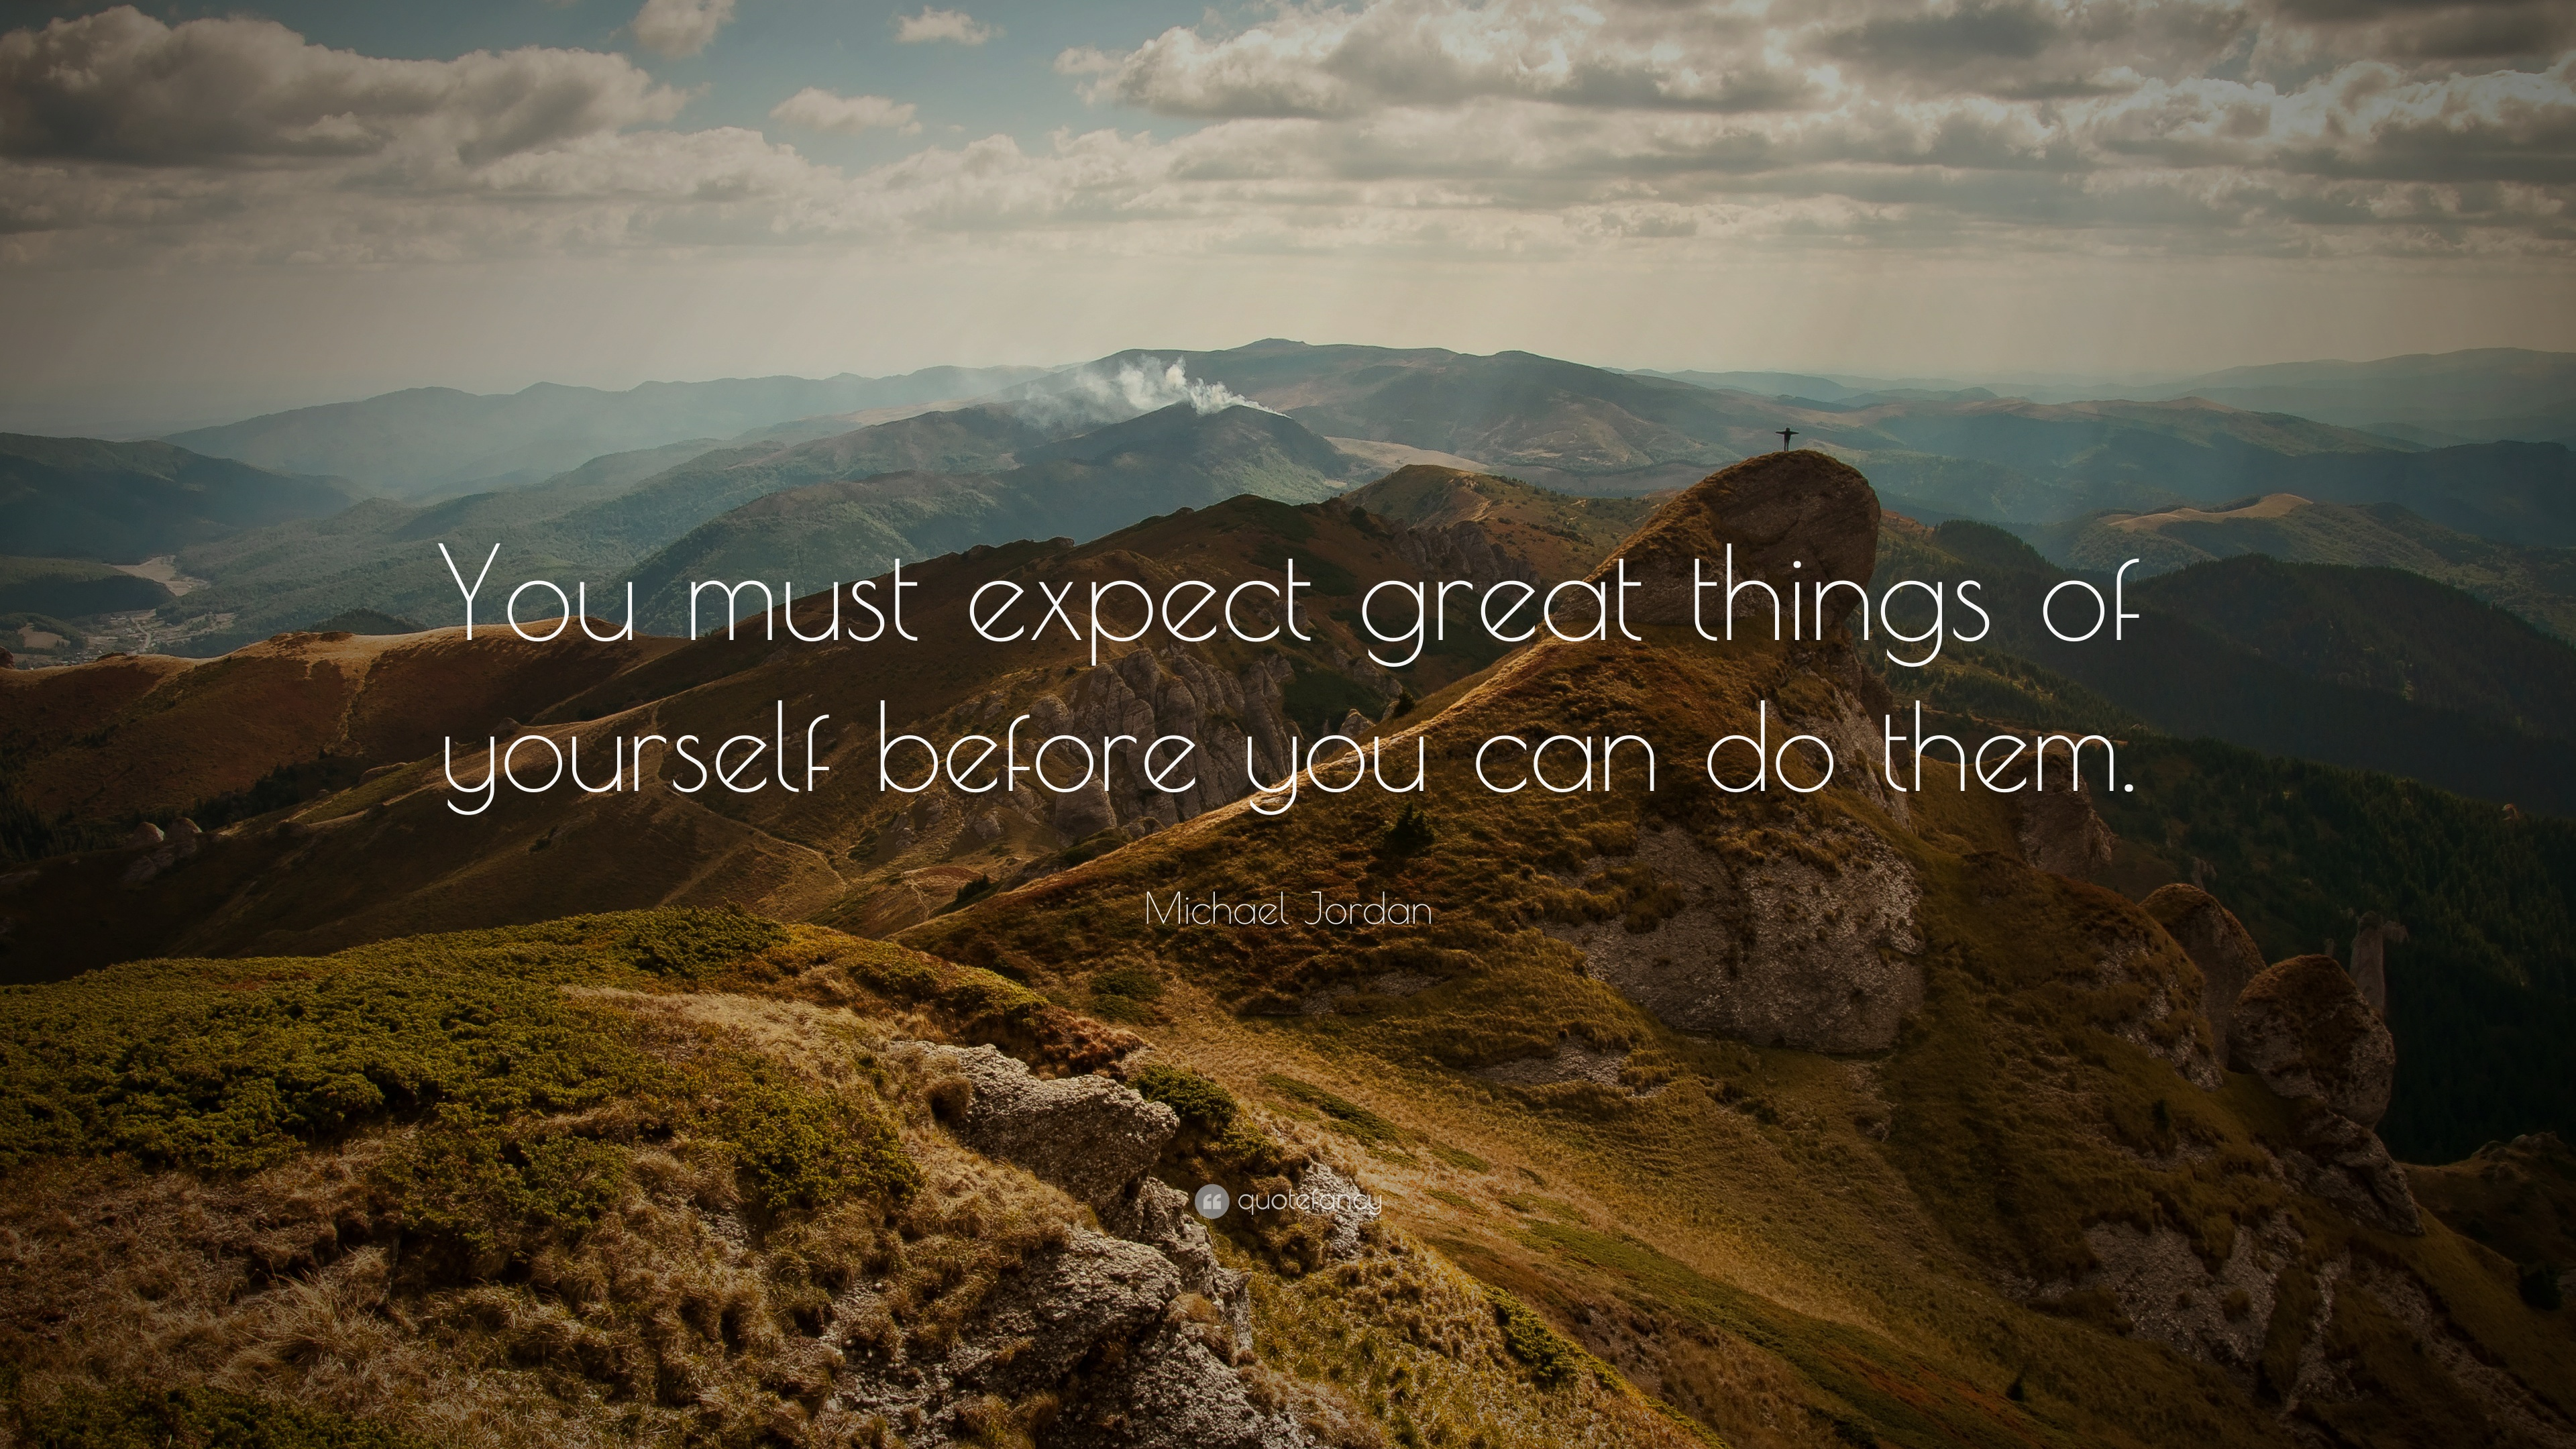 michael quote ldquo you must expect great things of yourself michael quote ldquoyou must expect great things of yourself before you can do